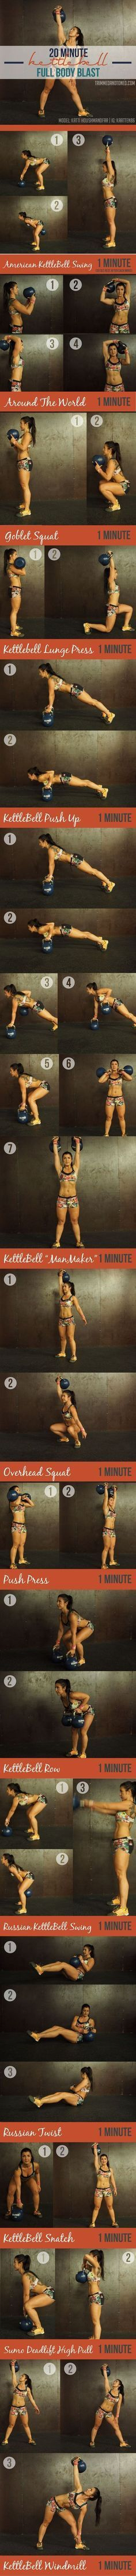 20 Minute Full Body Fat Loss Kettlebell Workout Circuit! Find more like this at http://gympins.com